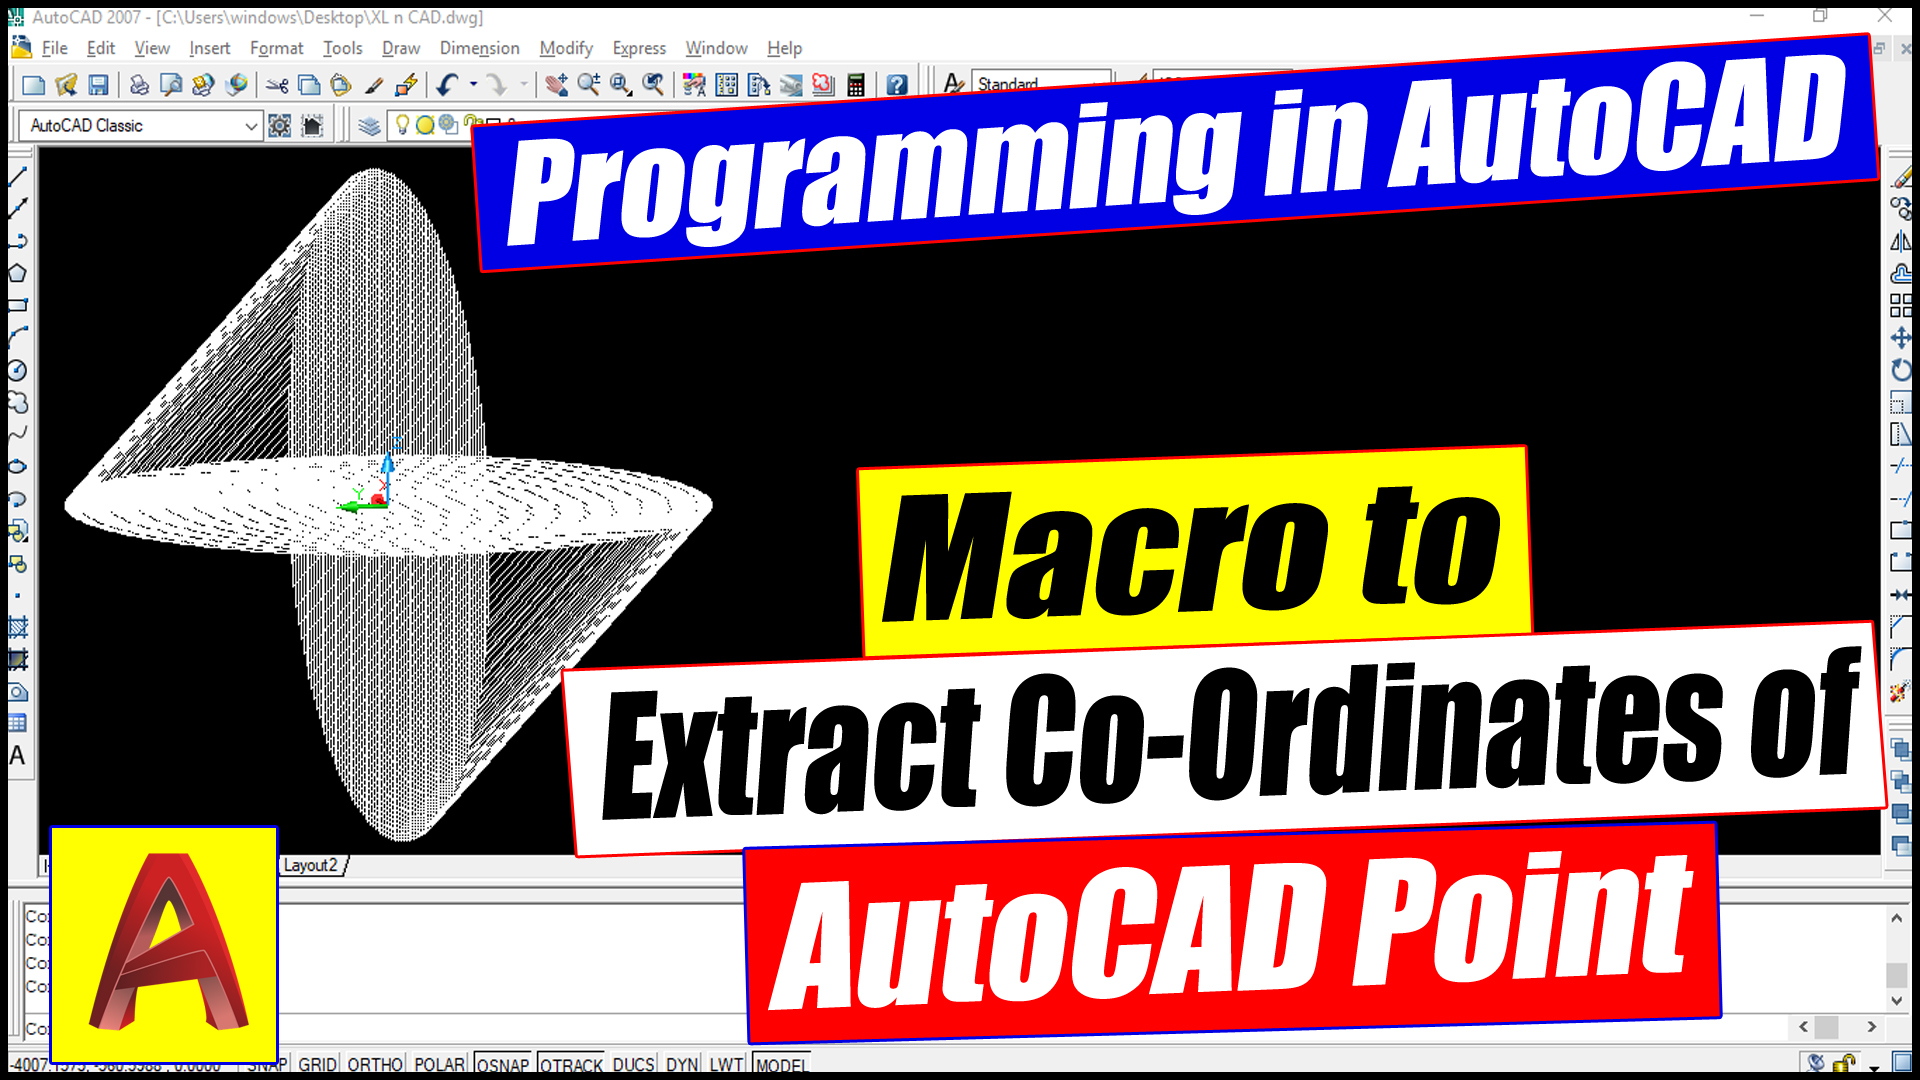 Macro to Extract details of AutoCAD Points